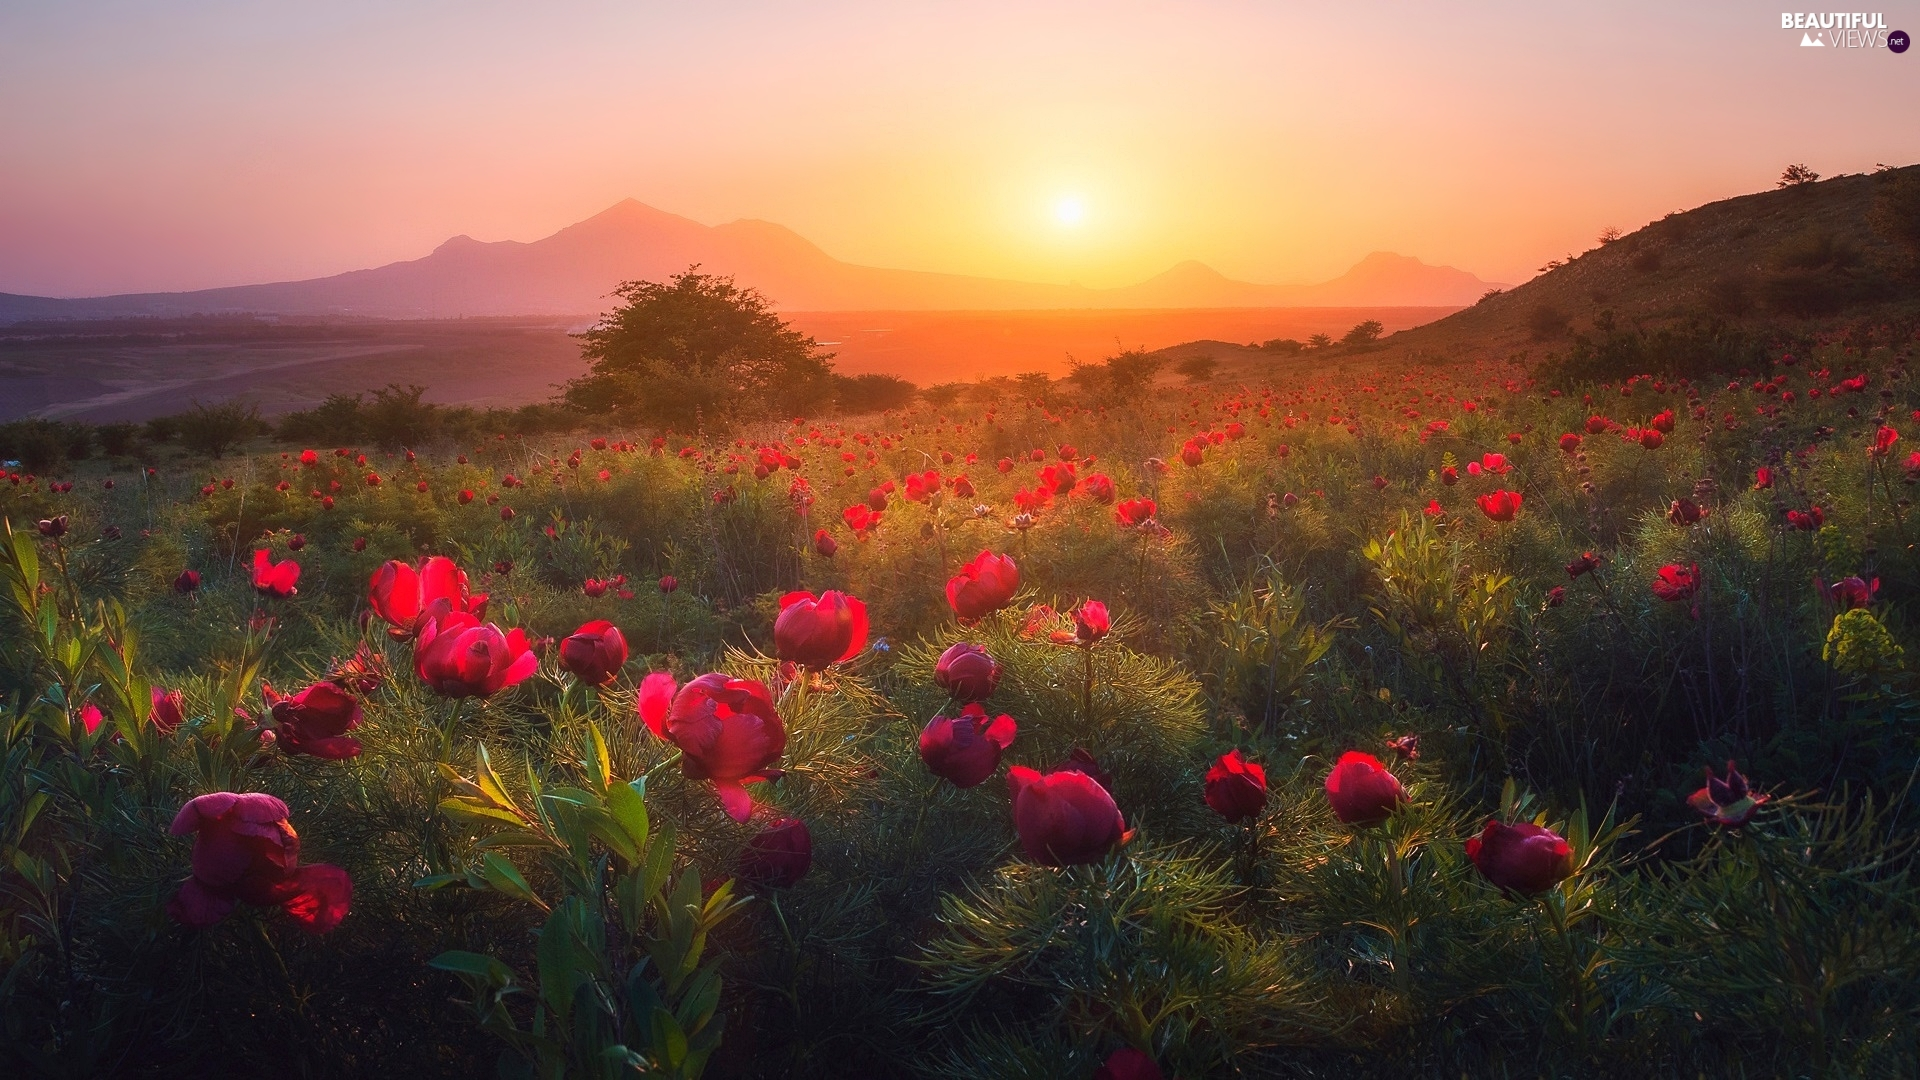 trees, Mountains, Peonies, Field, Great Sunsets, Flowers, Meadow